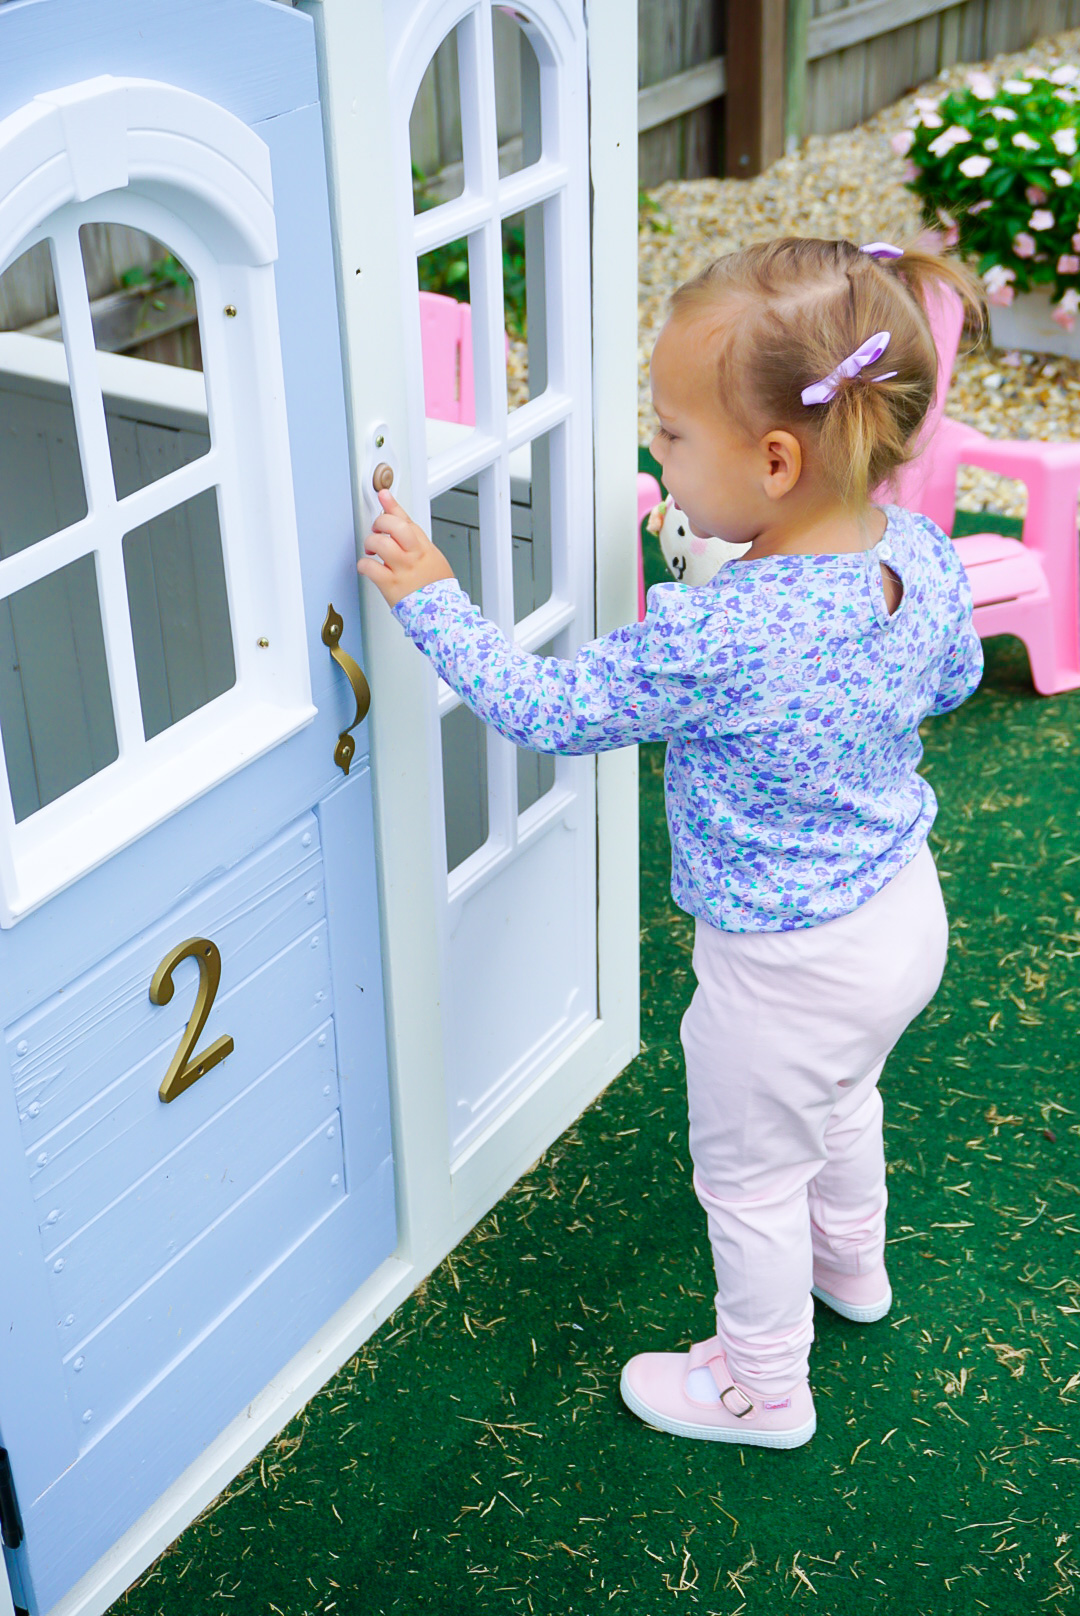 periwinkle blue paint colors, French blue paint colors, french blue home paint, pink toy chairs, pink play chairs